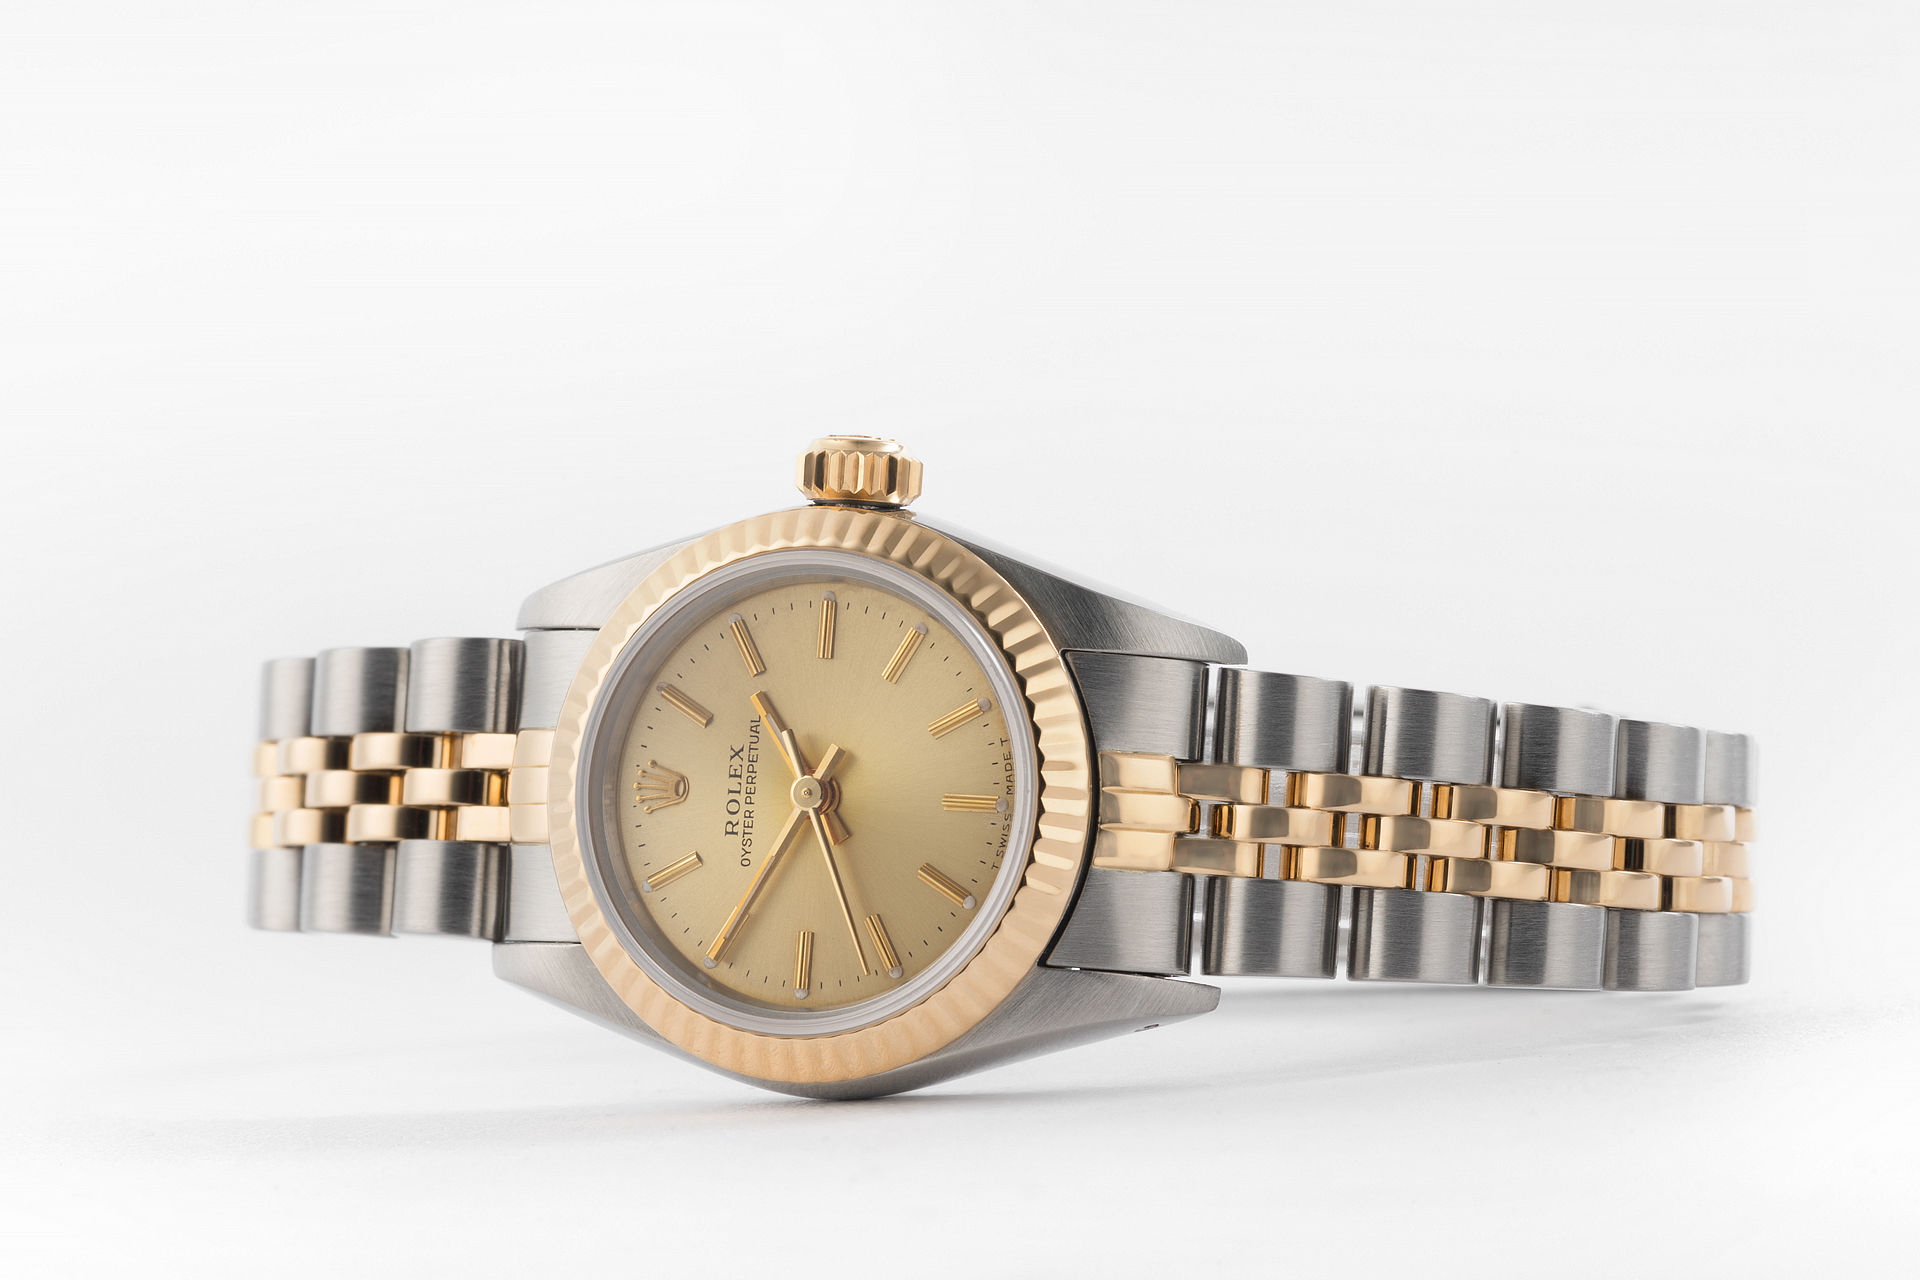 ref 67193 | Gold & Steel 'Box & Papers' | Rolex Oyster Perpetual